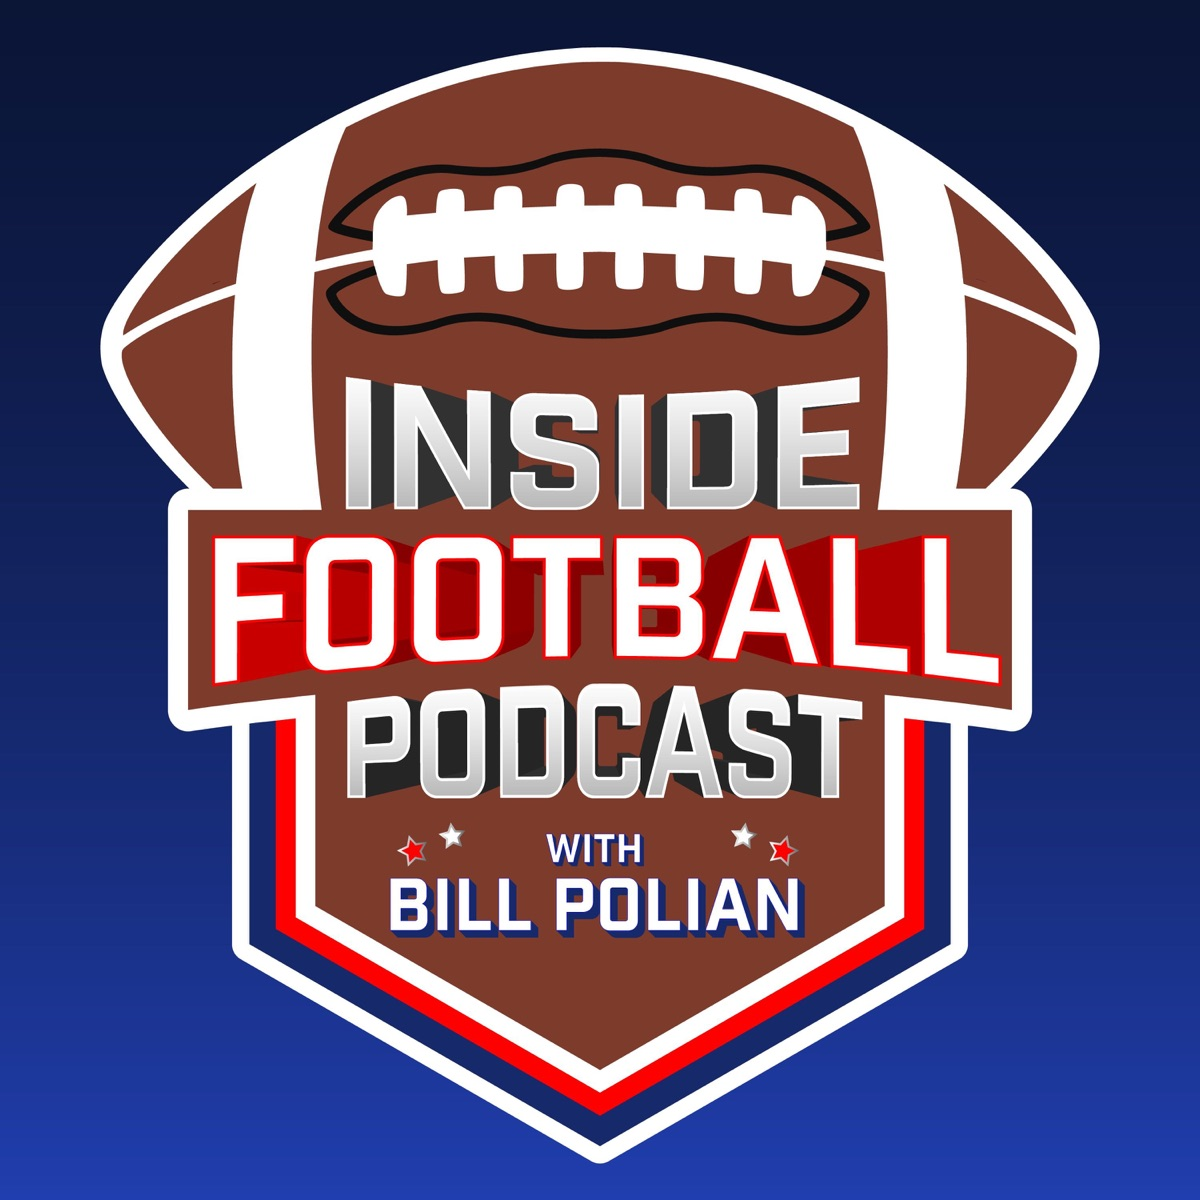 Inside Football Podcast with Bill Polian